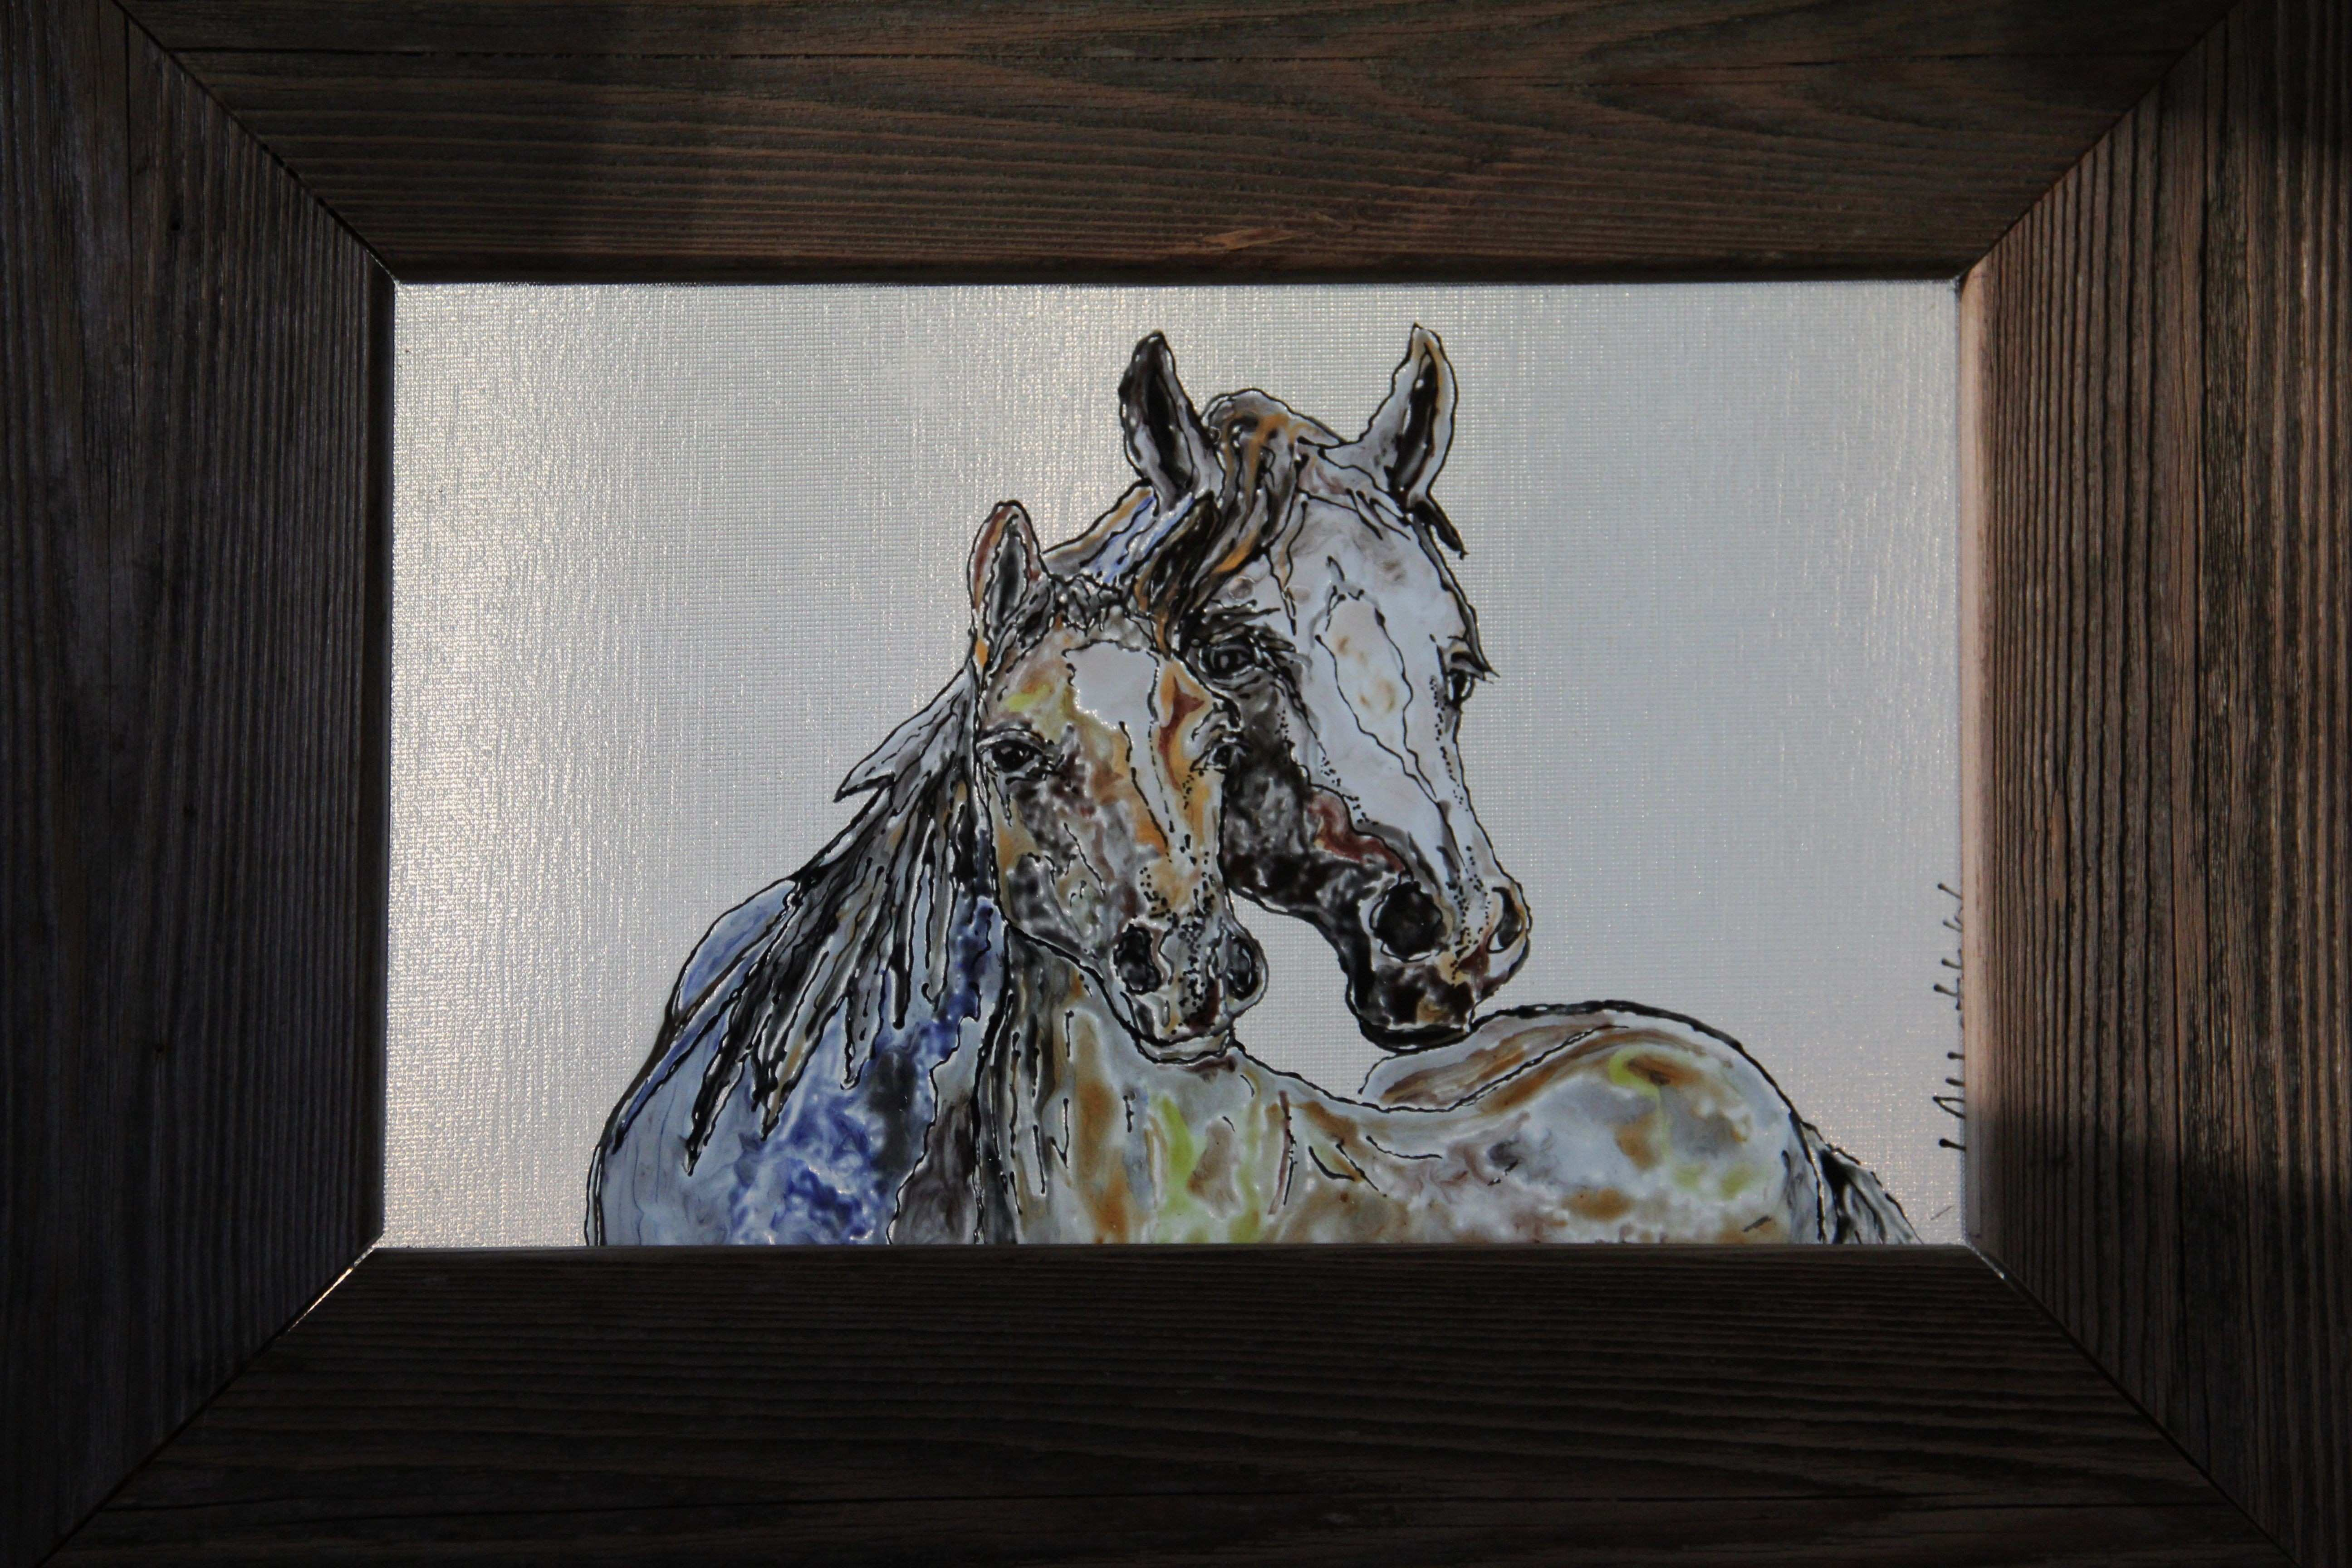 This mare and foal painting is pleted and framed in old barn wood